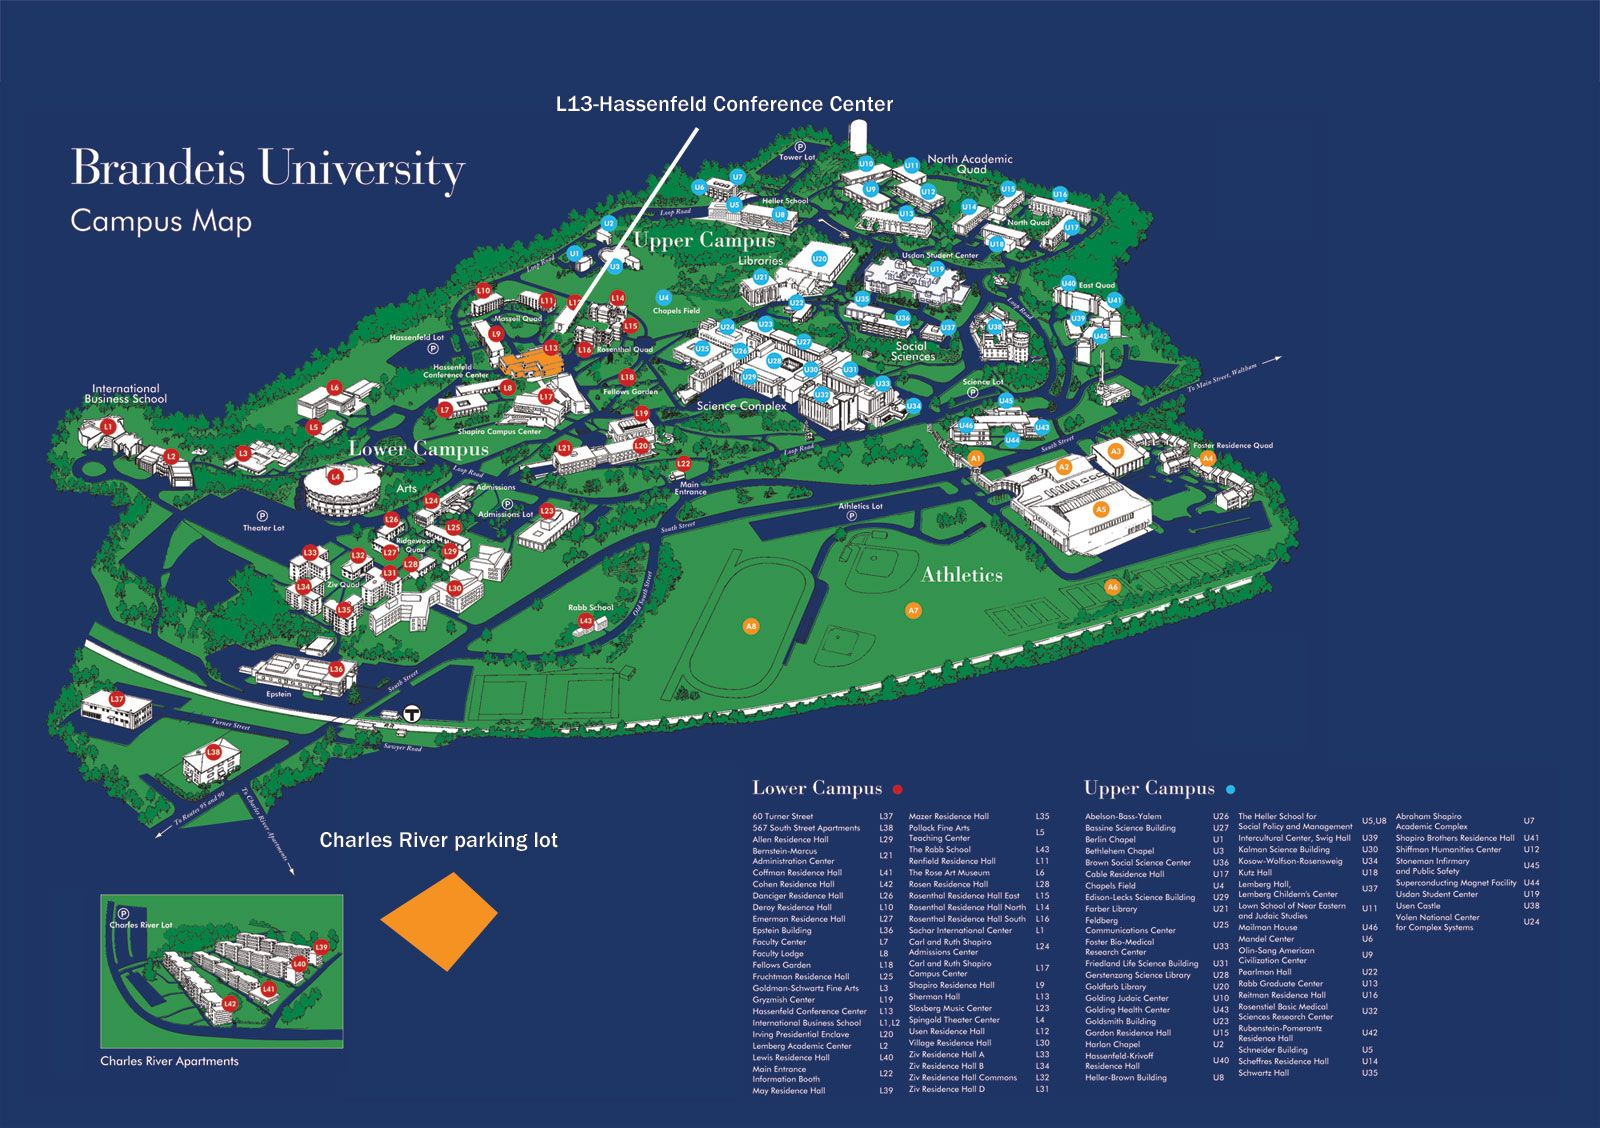 Bunker Hill Community College Campus Map.Brandeis Campus Map Boston Map Us Map Campus Map